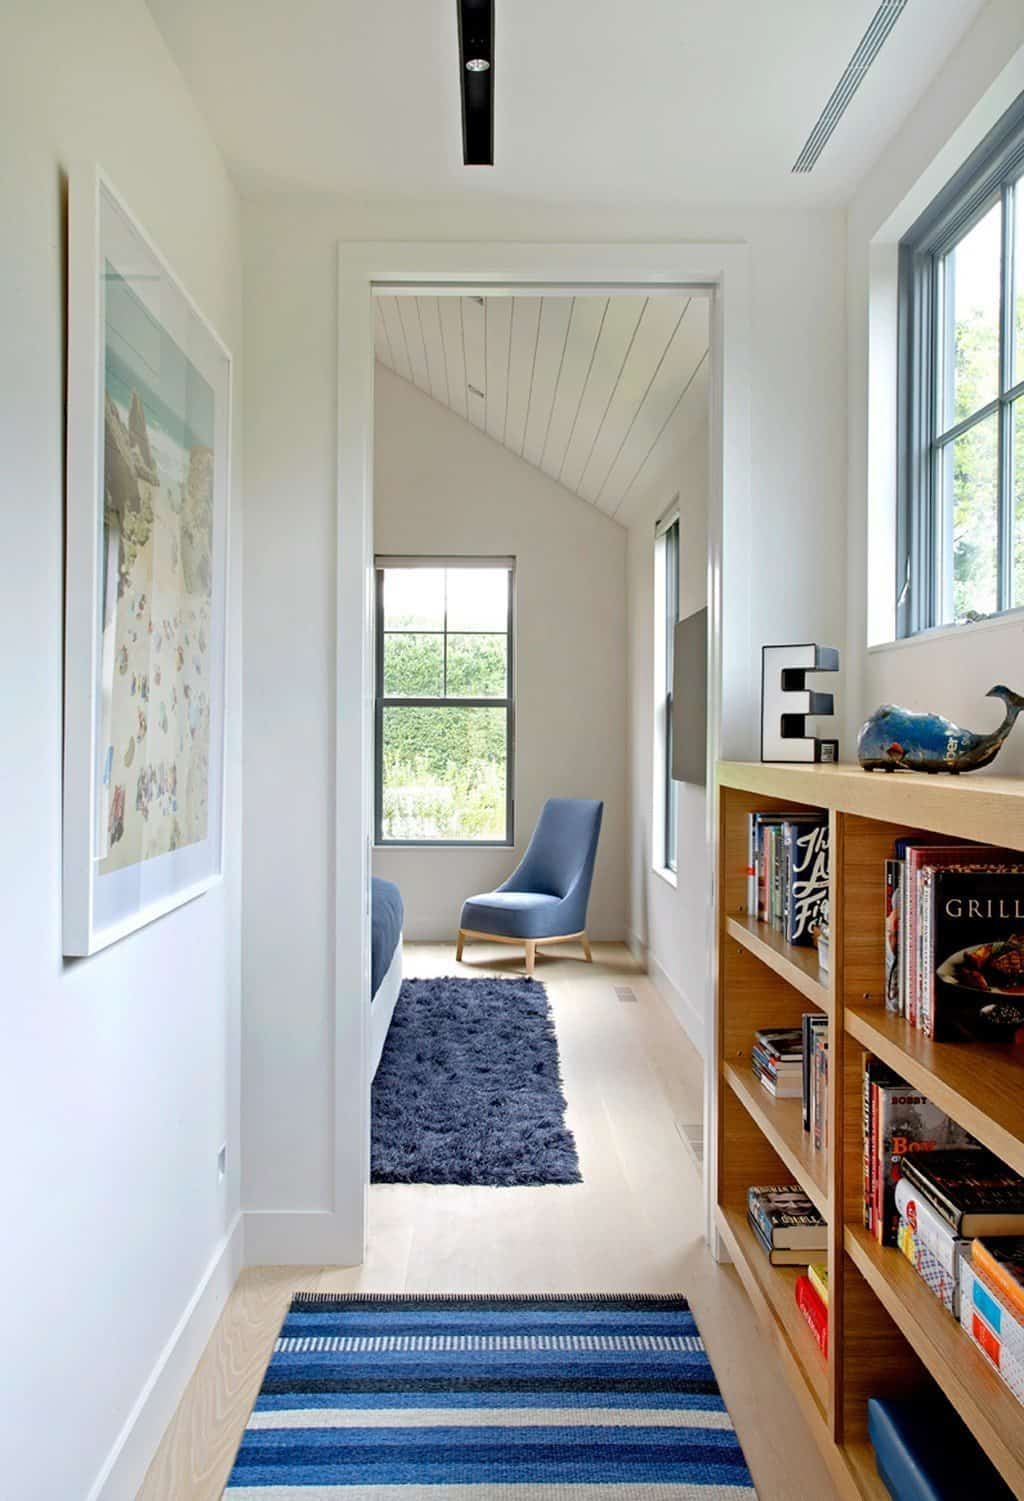 Sagaponack-Cottage-Blaze Makoid Architecture-11-1 Kindesign